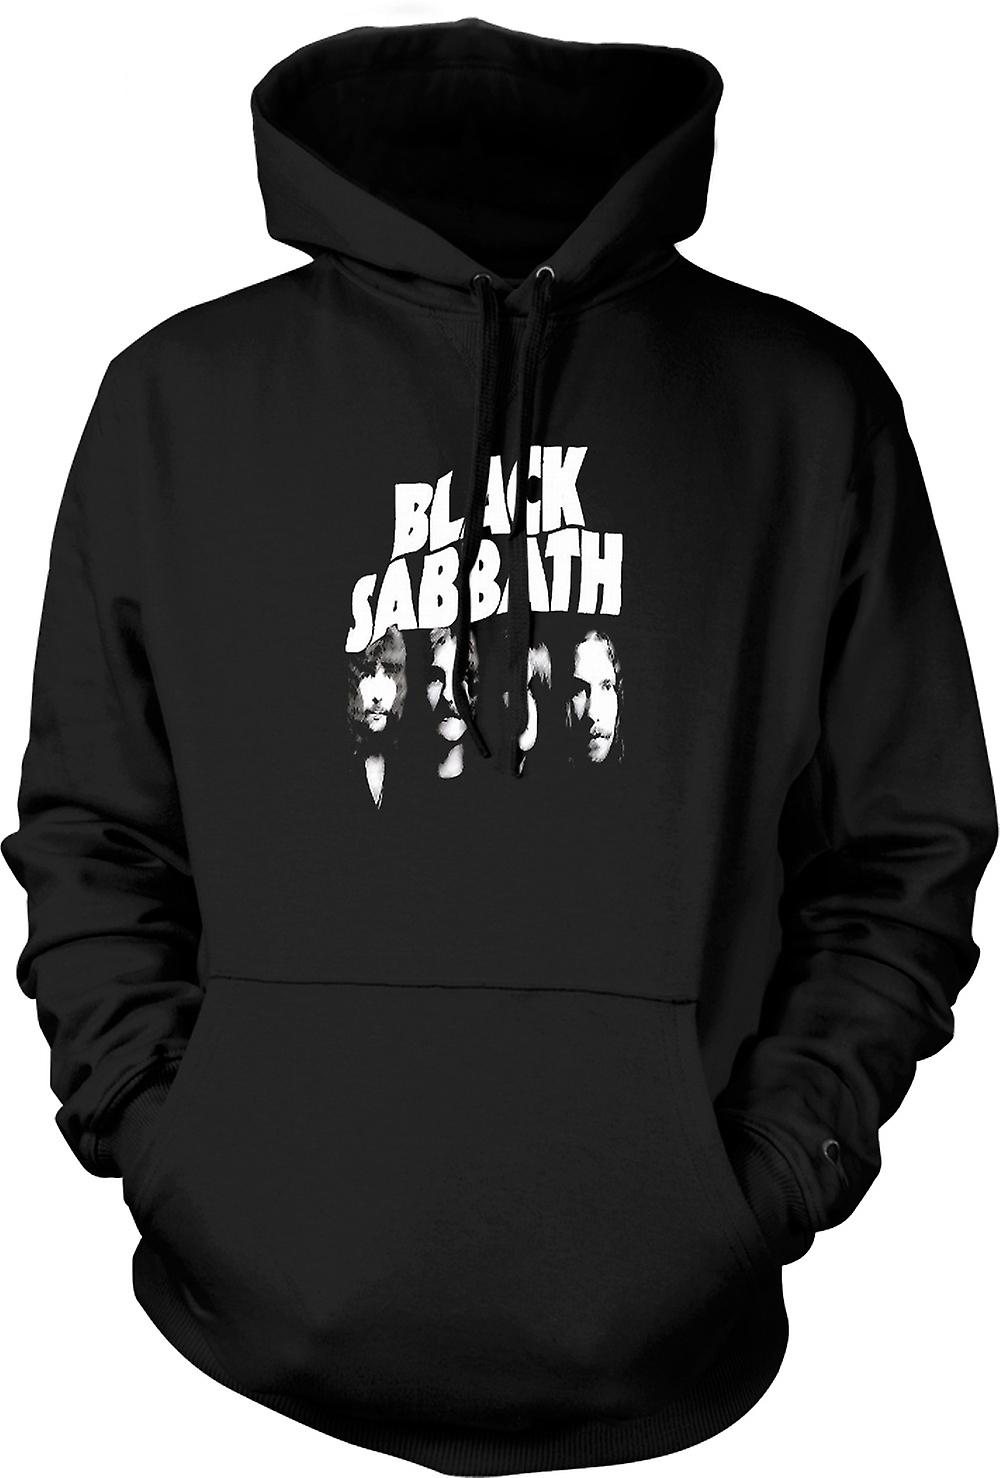 Mens Hoodie - Sabbath - Band - Heavy Metal